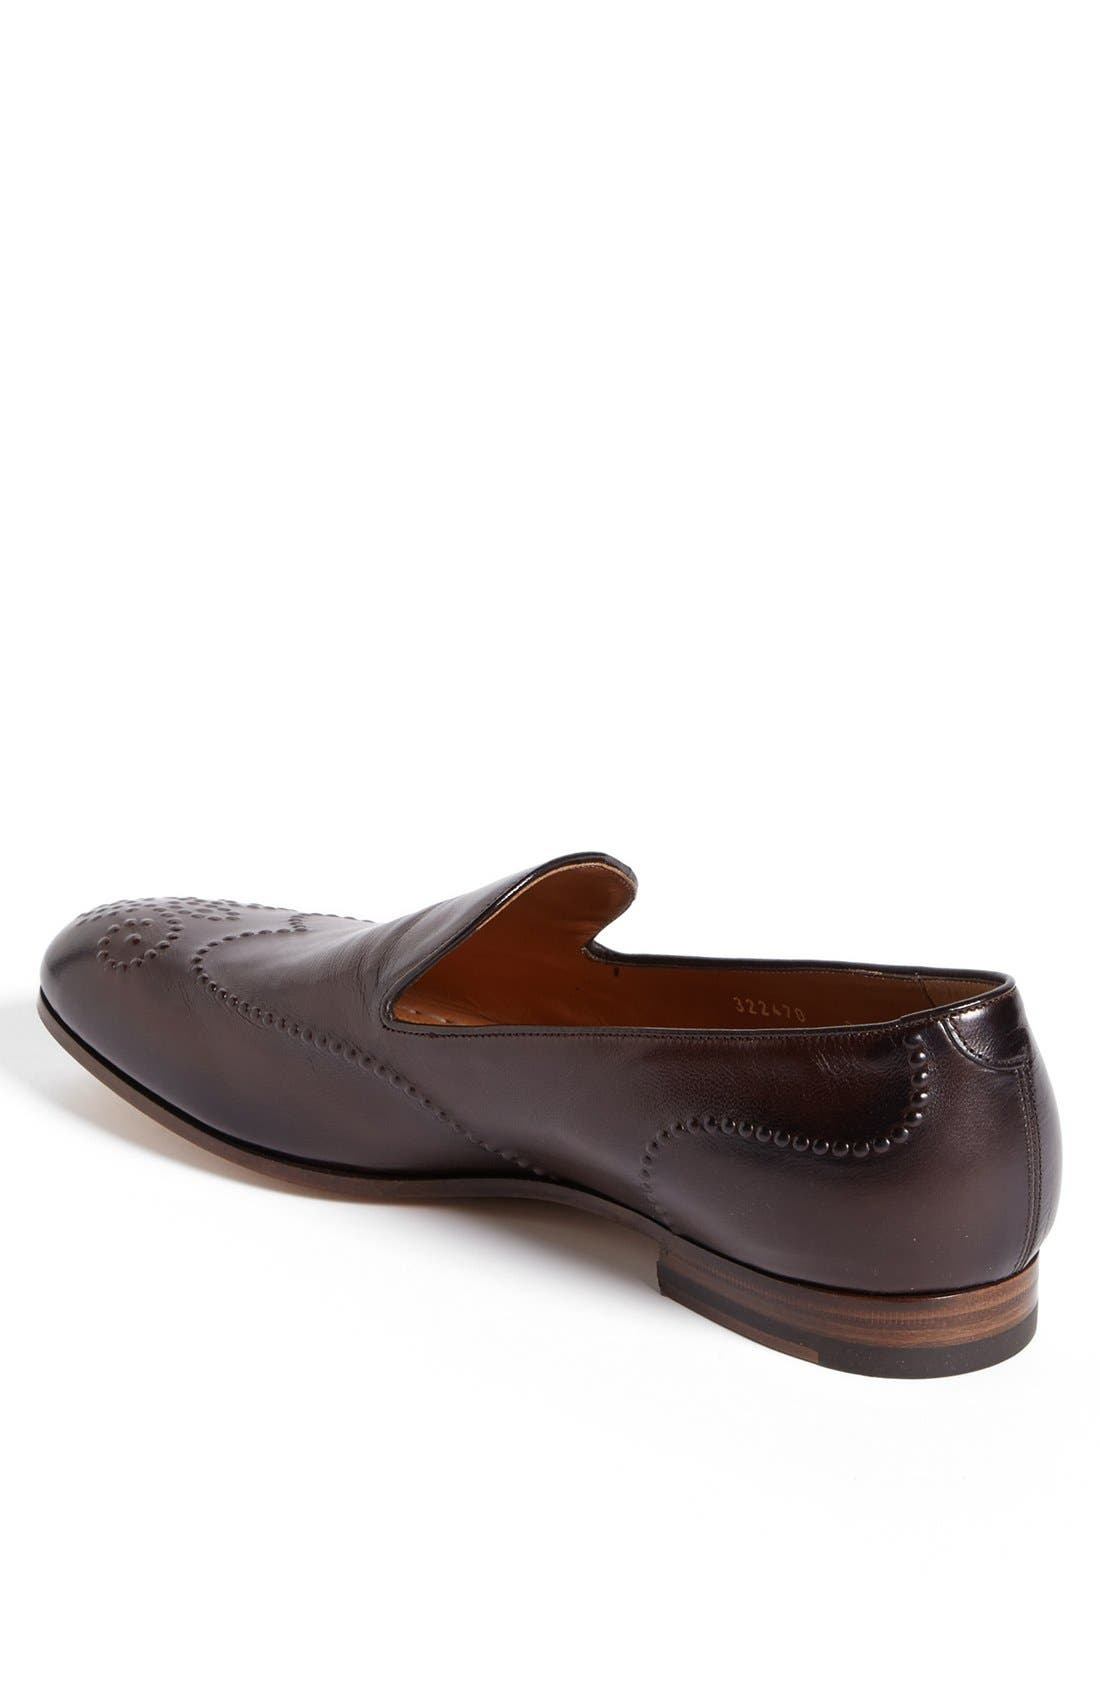 Alternate Image 2  - Gucci 'Beren' Loafer